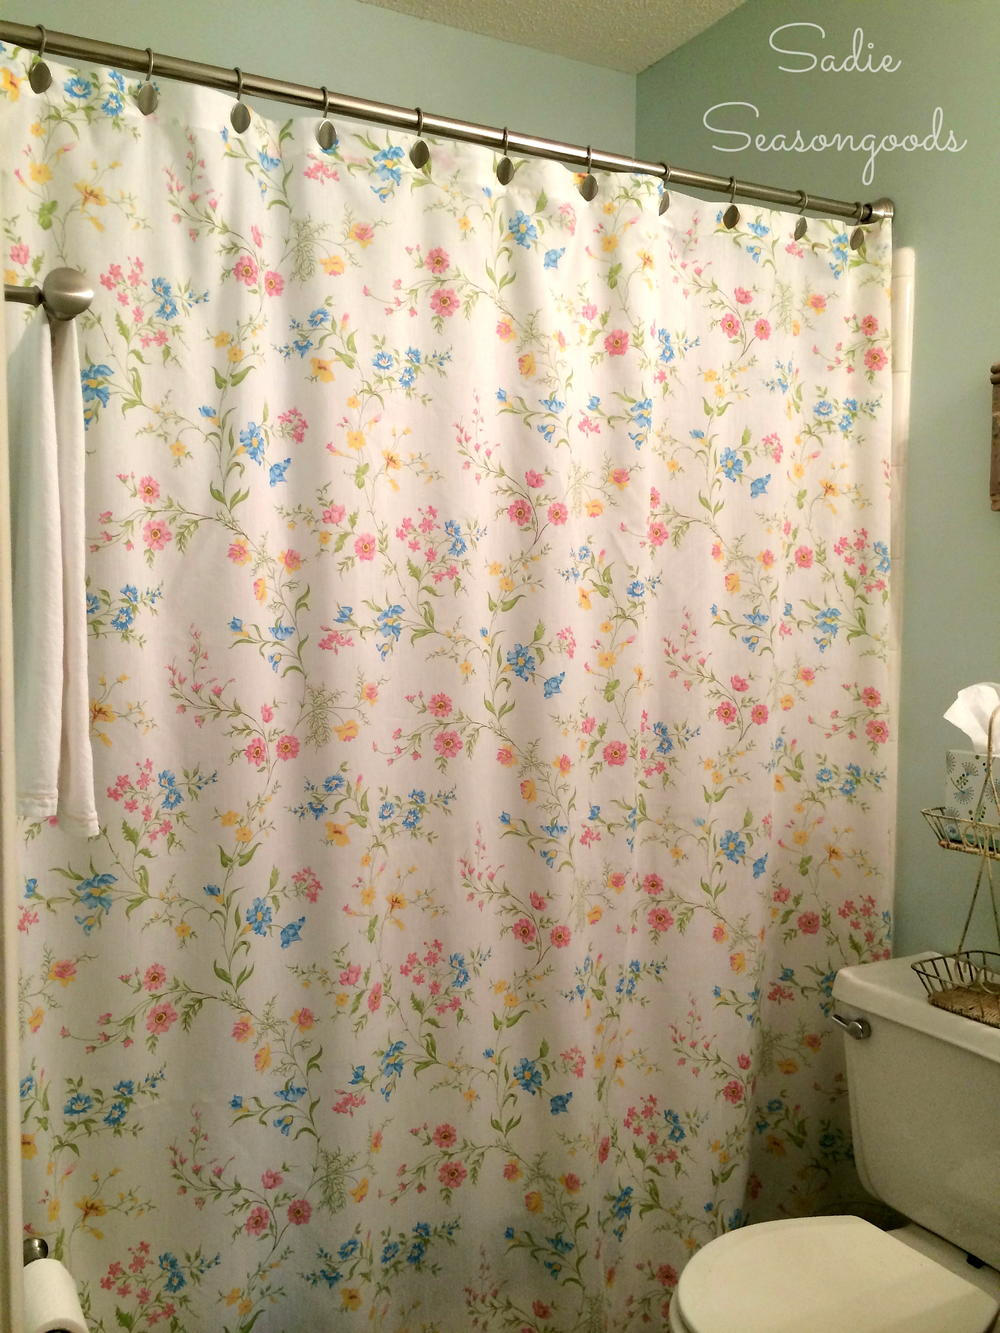 Vintage Sheet Shower Curtain Allfreesewing Com